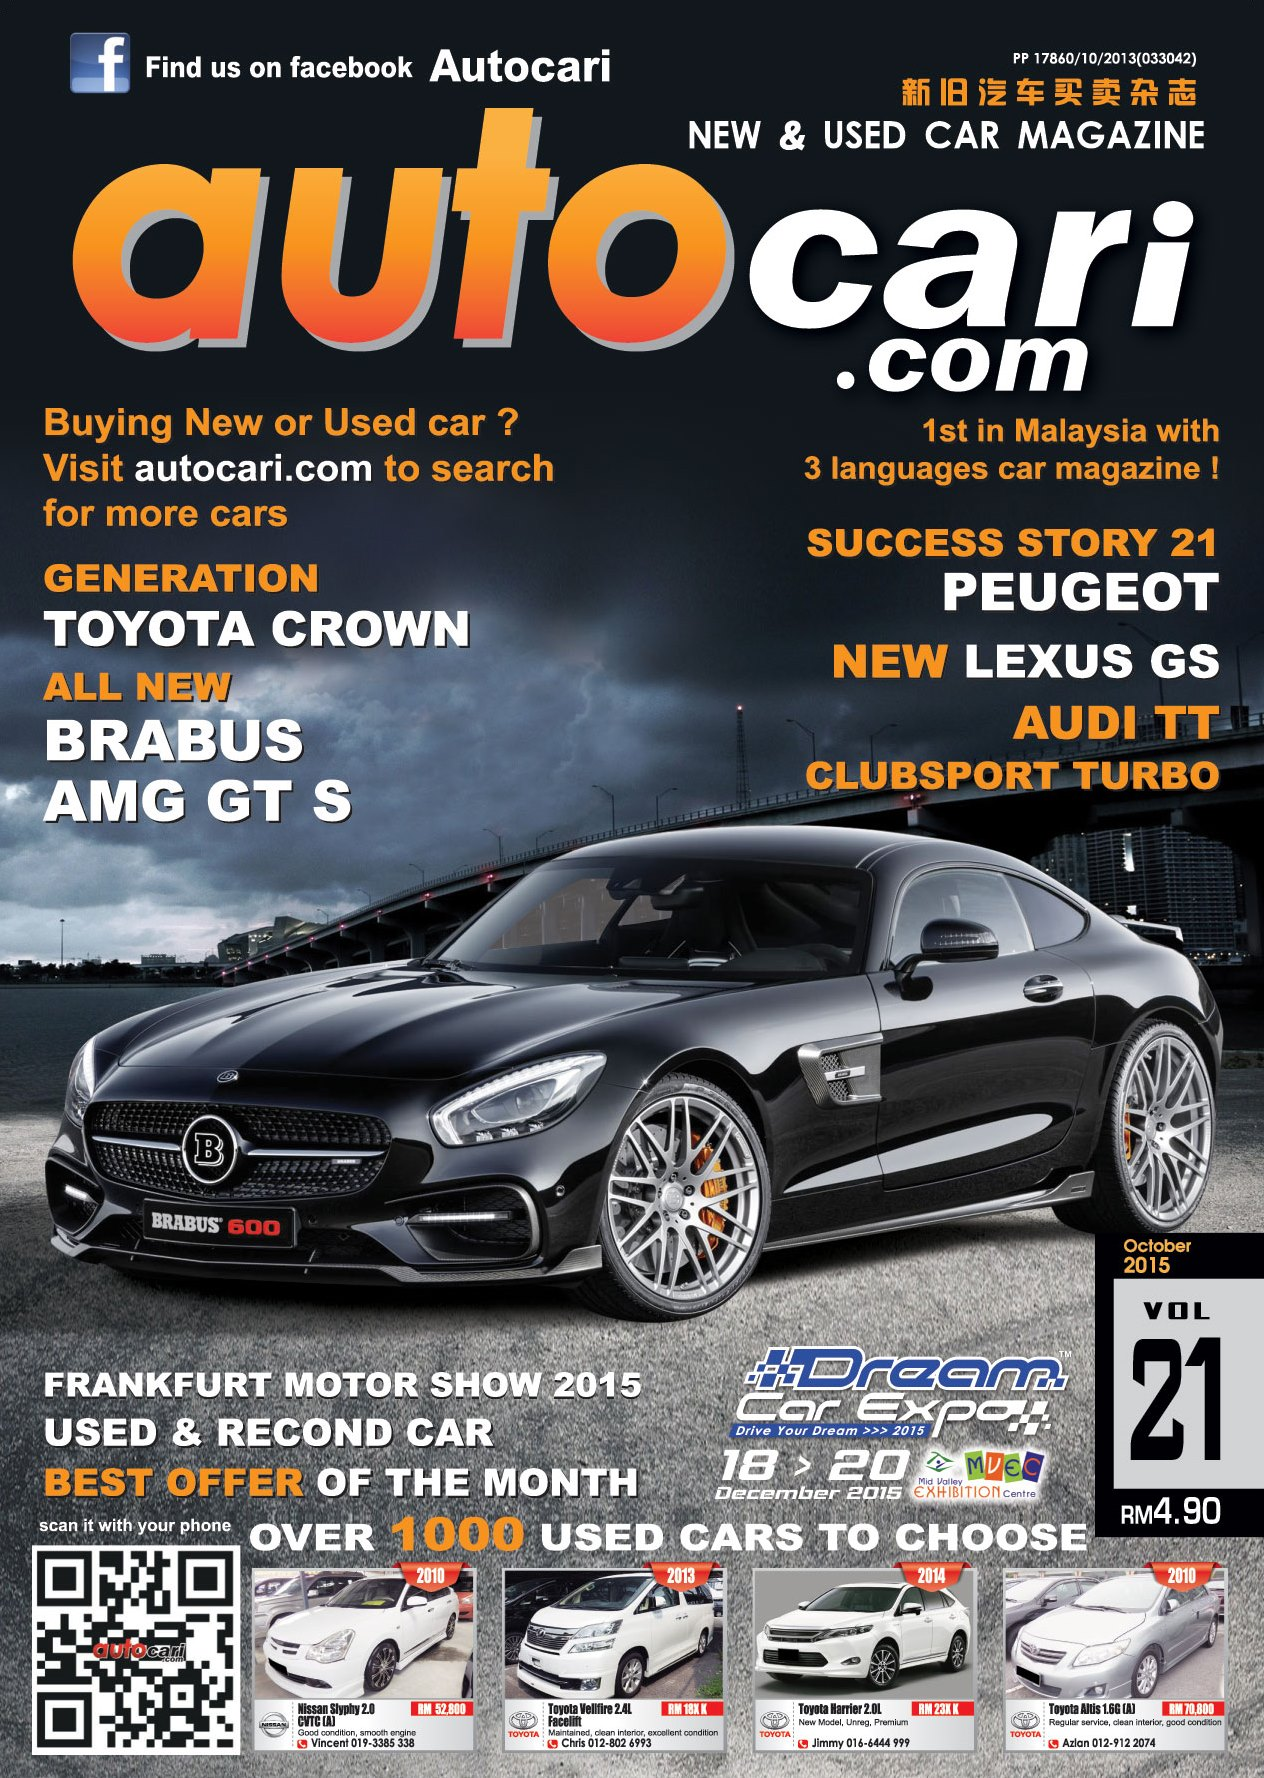 Autocari - Ebook Site